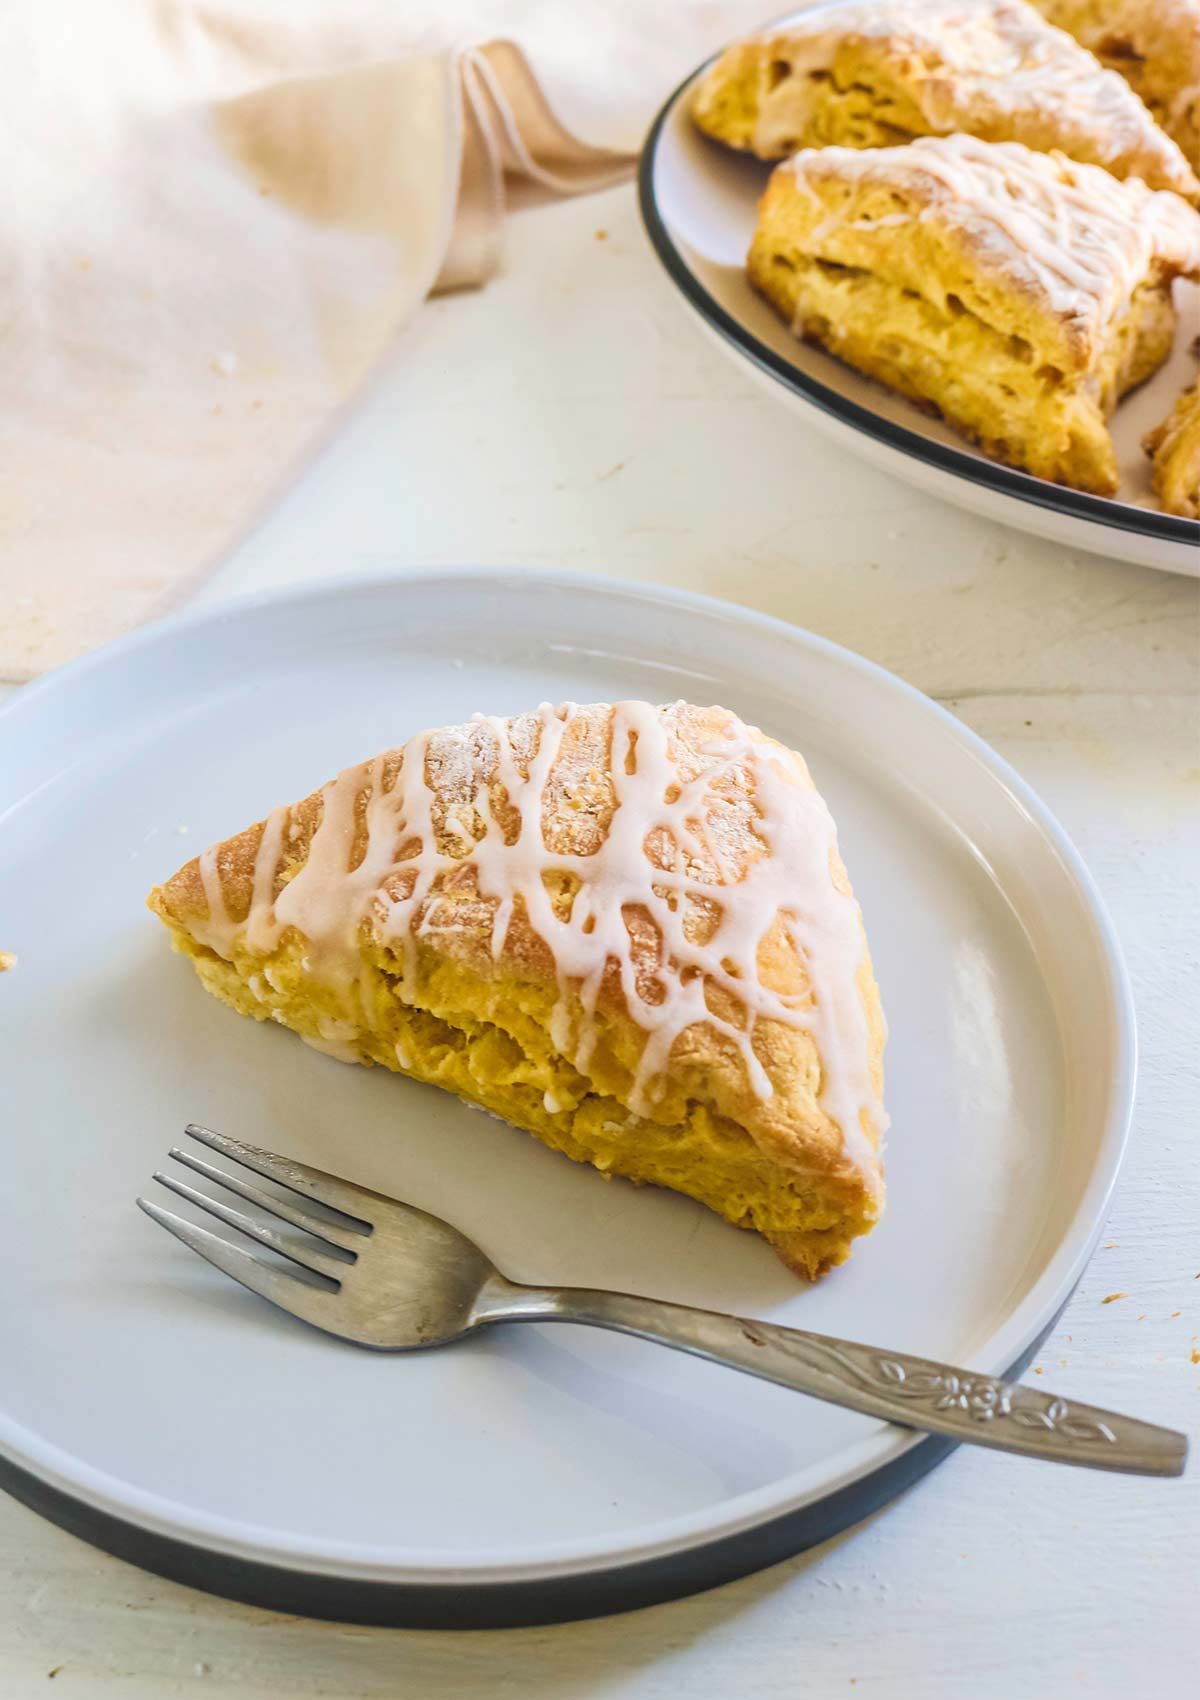 pumpkin scone served in a plate with fork